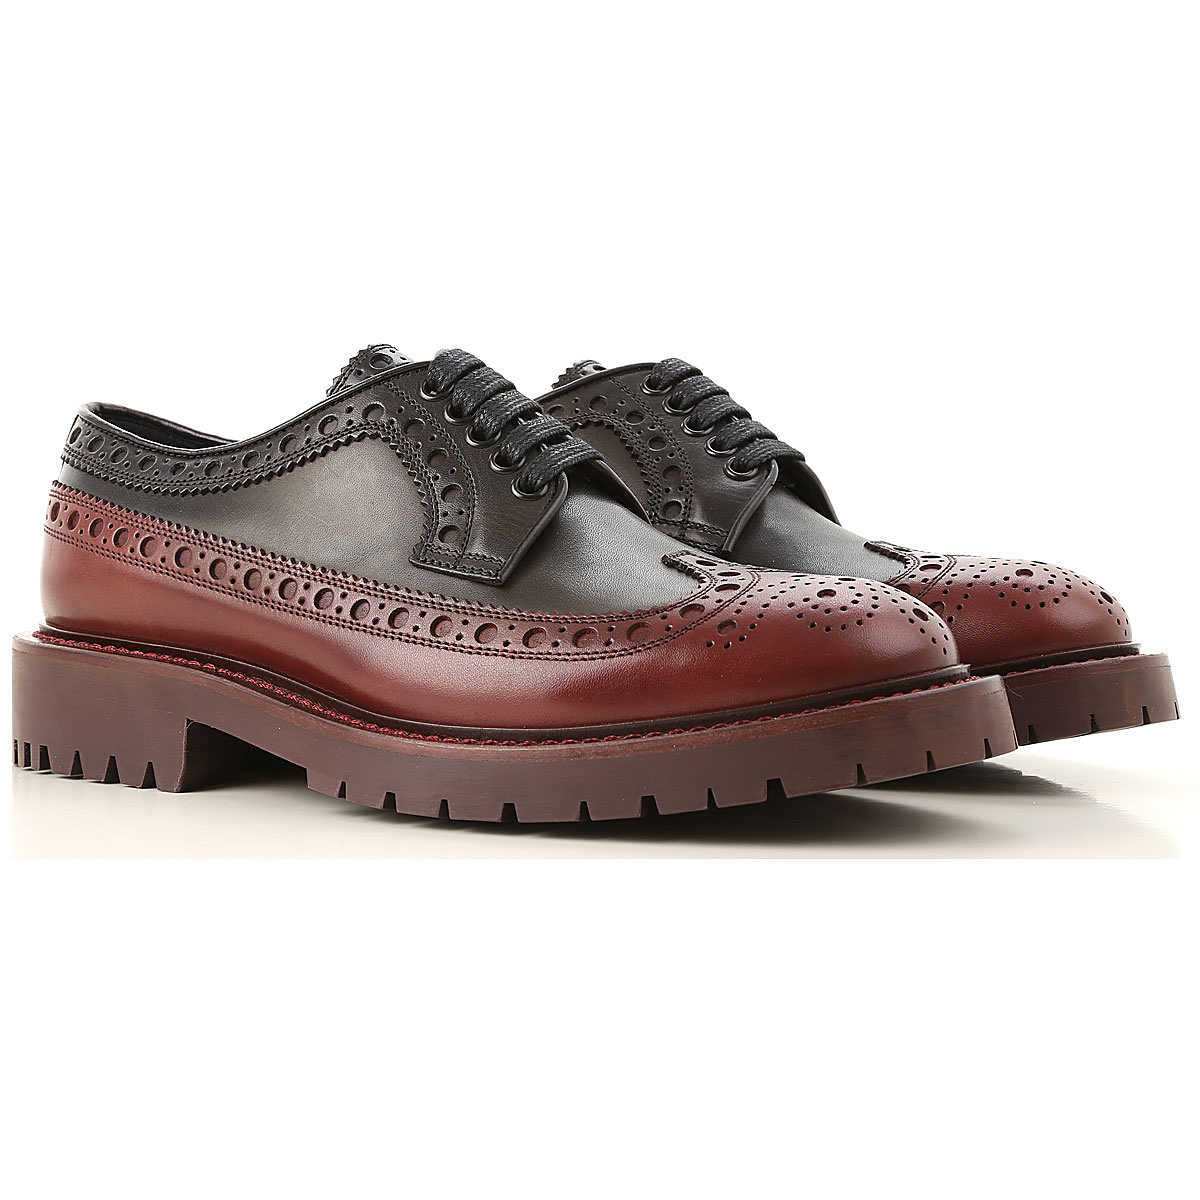 Burberry Lace Up Shoes for Men Oxfords Derbies and Brogues On Sale - GOOFASH